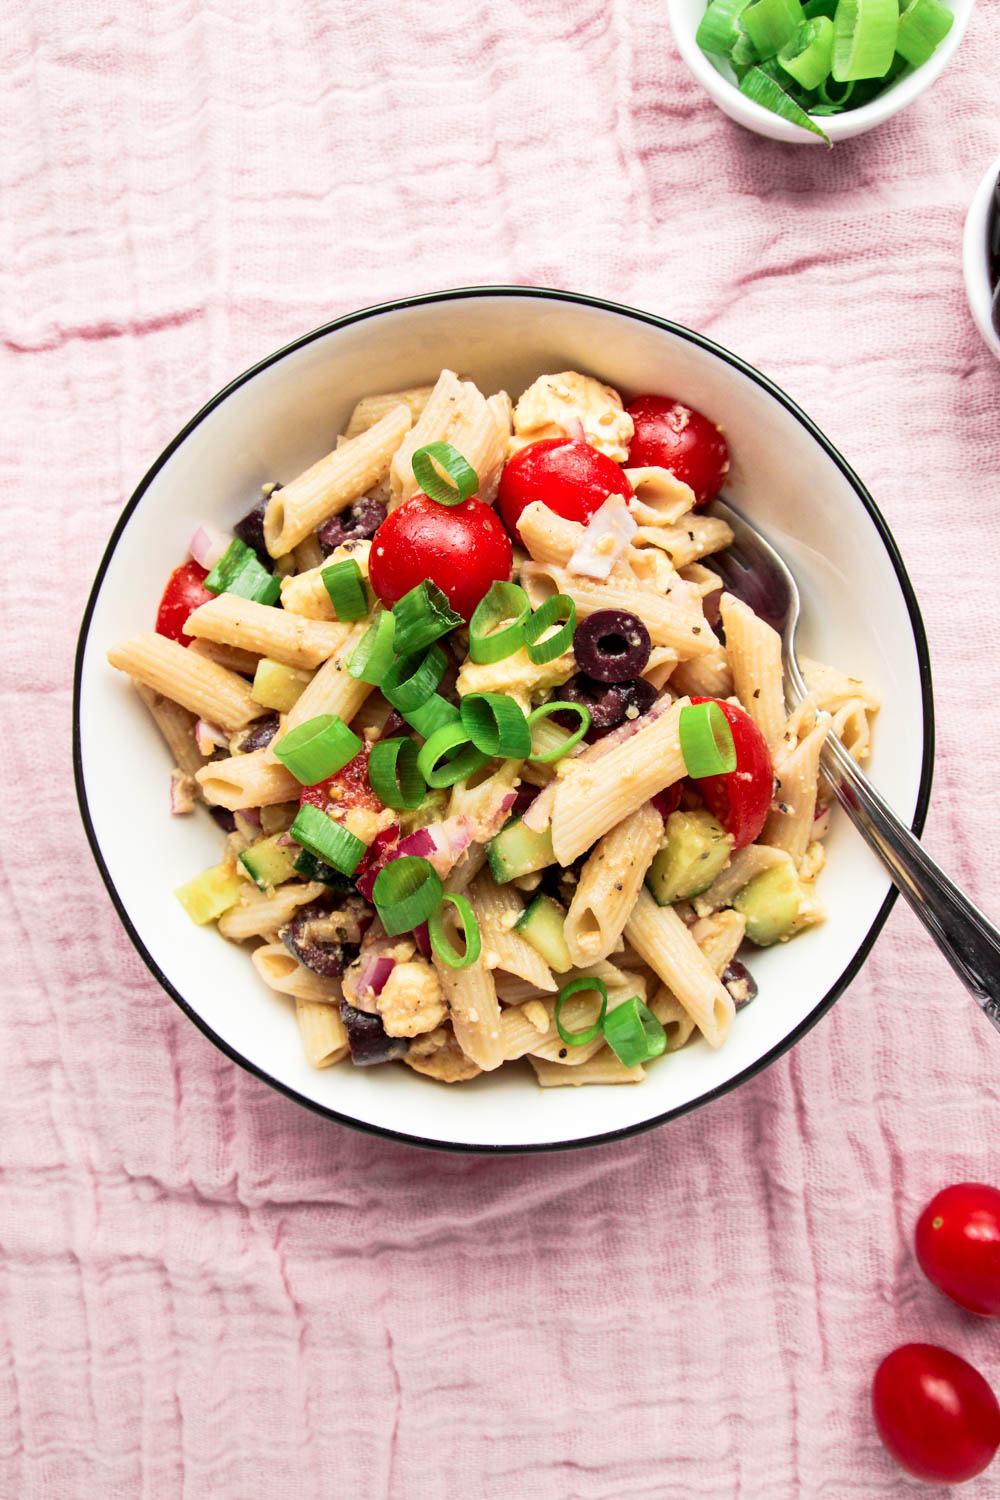 Fresh Summer Pasta Salad with tomatoes and spring onions on the side.